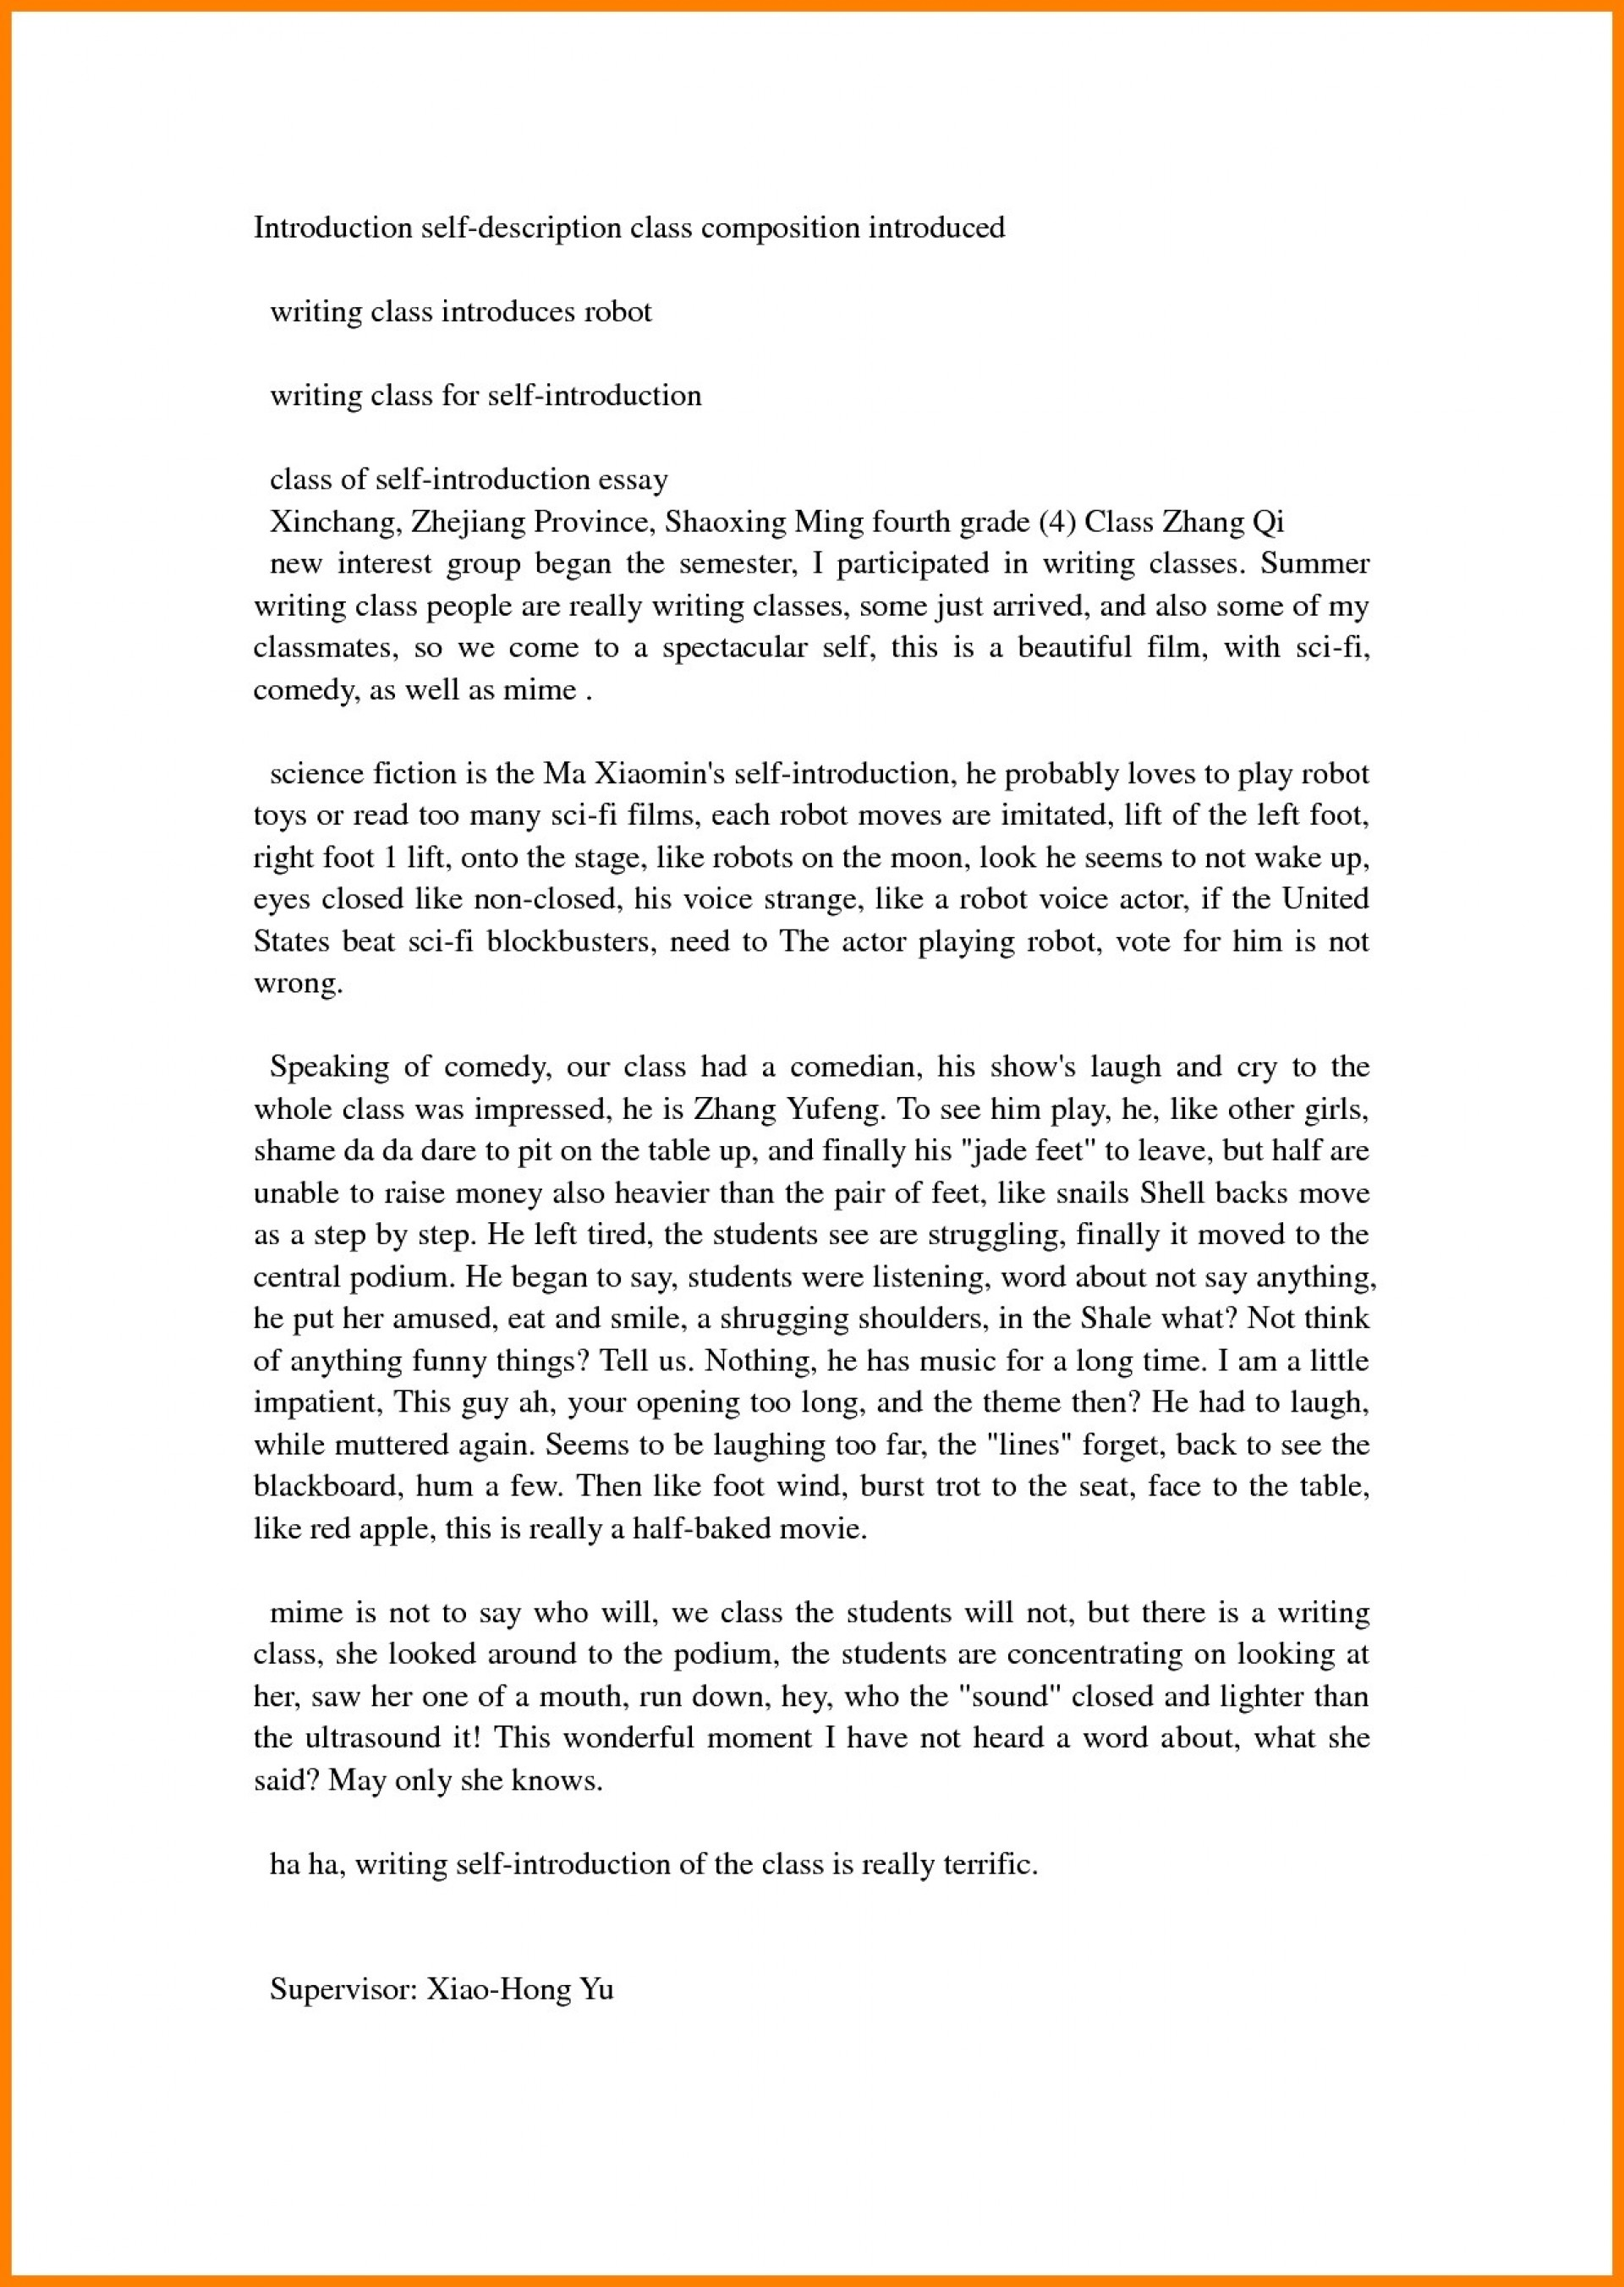 015 How To Write Ann Letter About Yourself Essay Myself Of Example Striking Introduction In Urdu Introduce For Interview Sample Pdf 1920